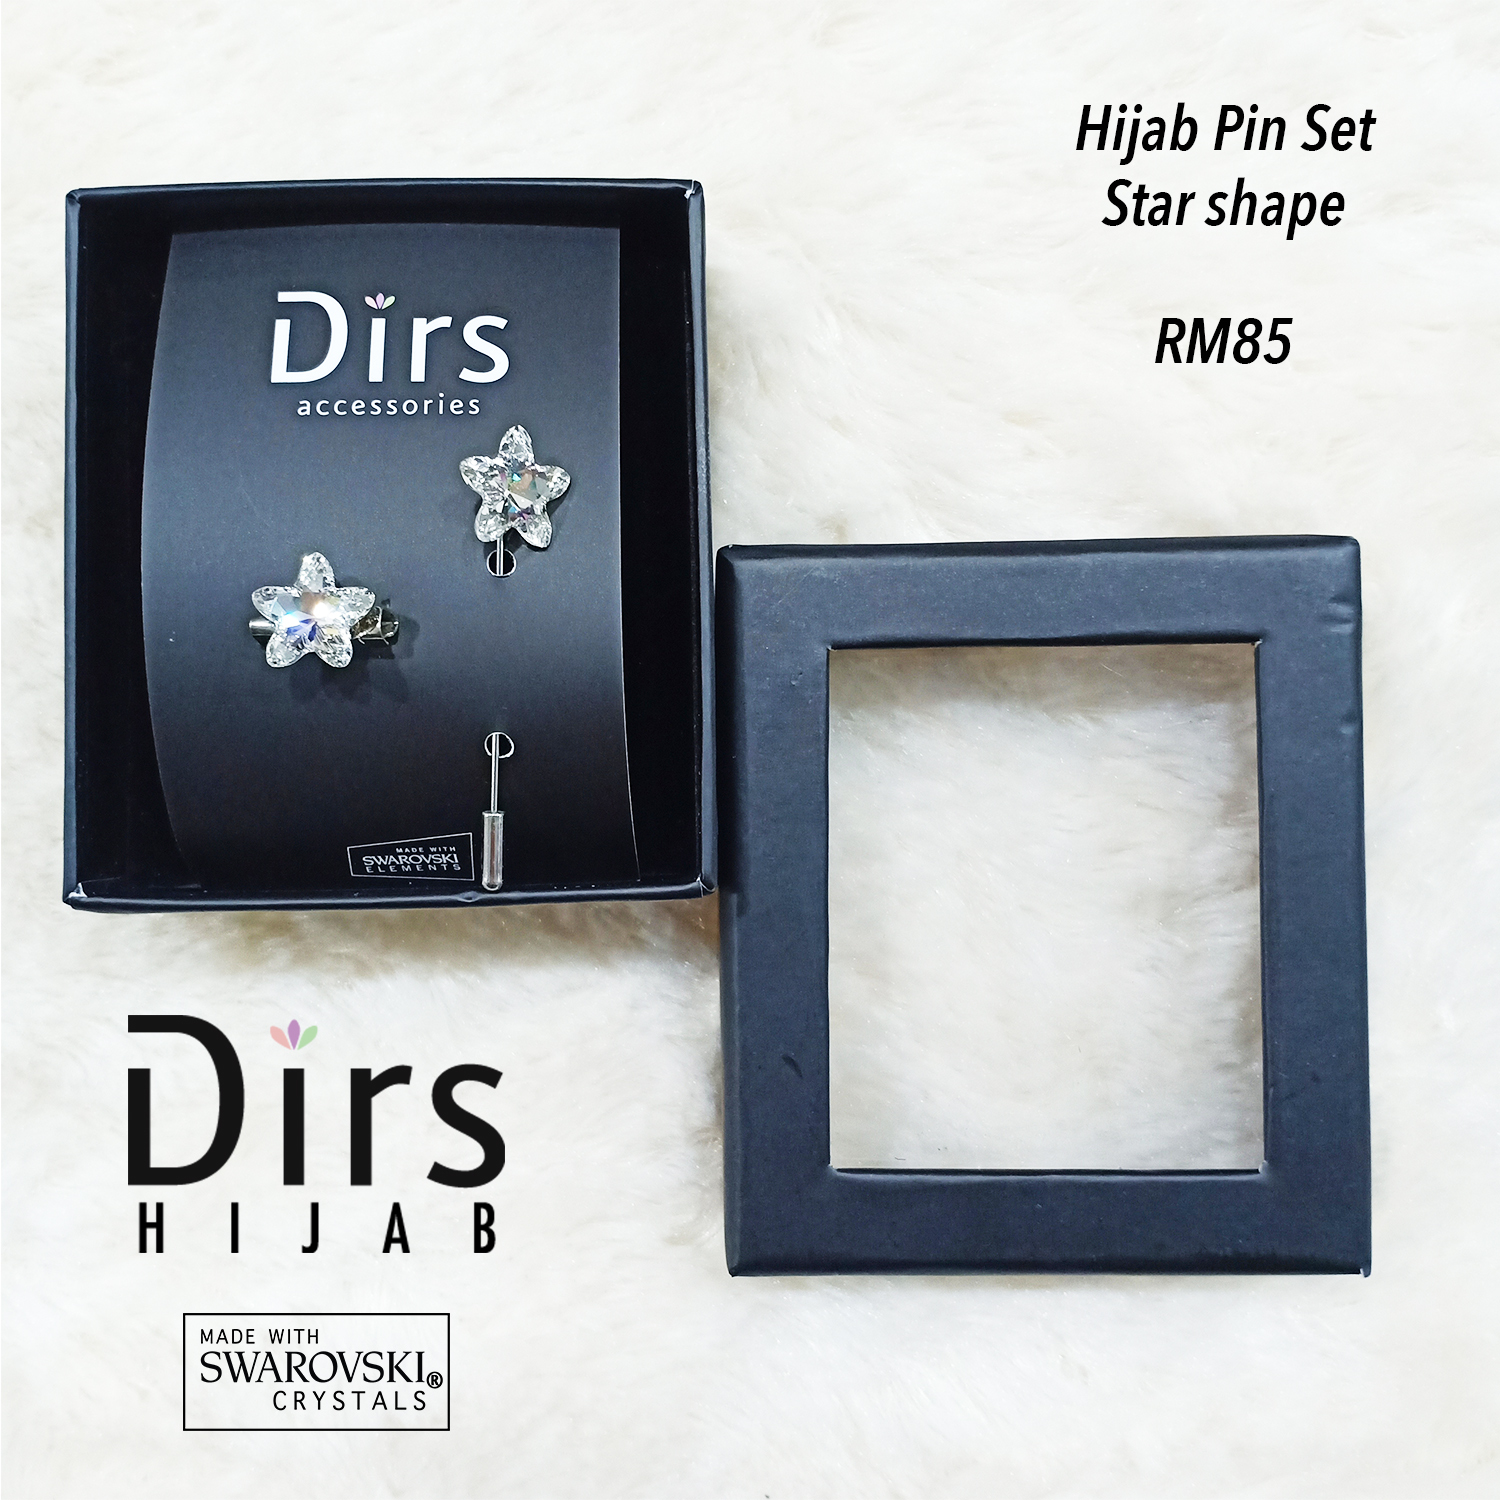 hijab pin set Star shape rm85.jpg